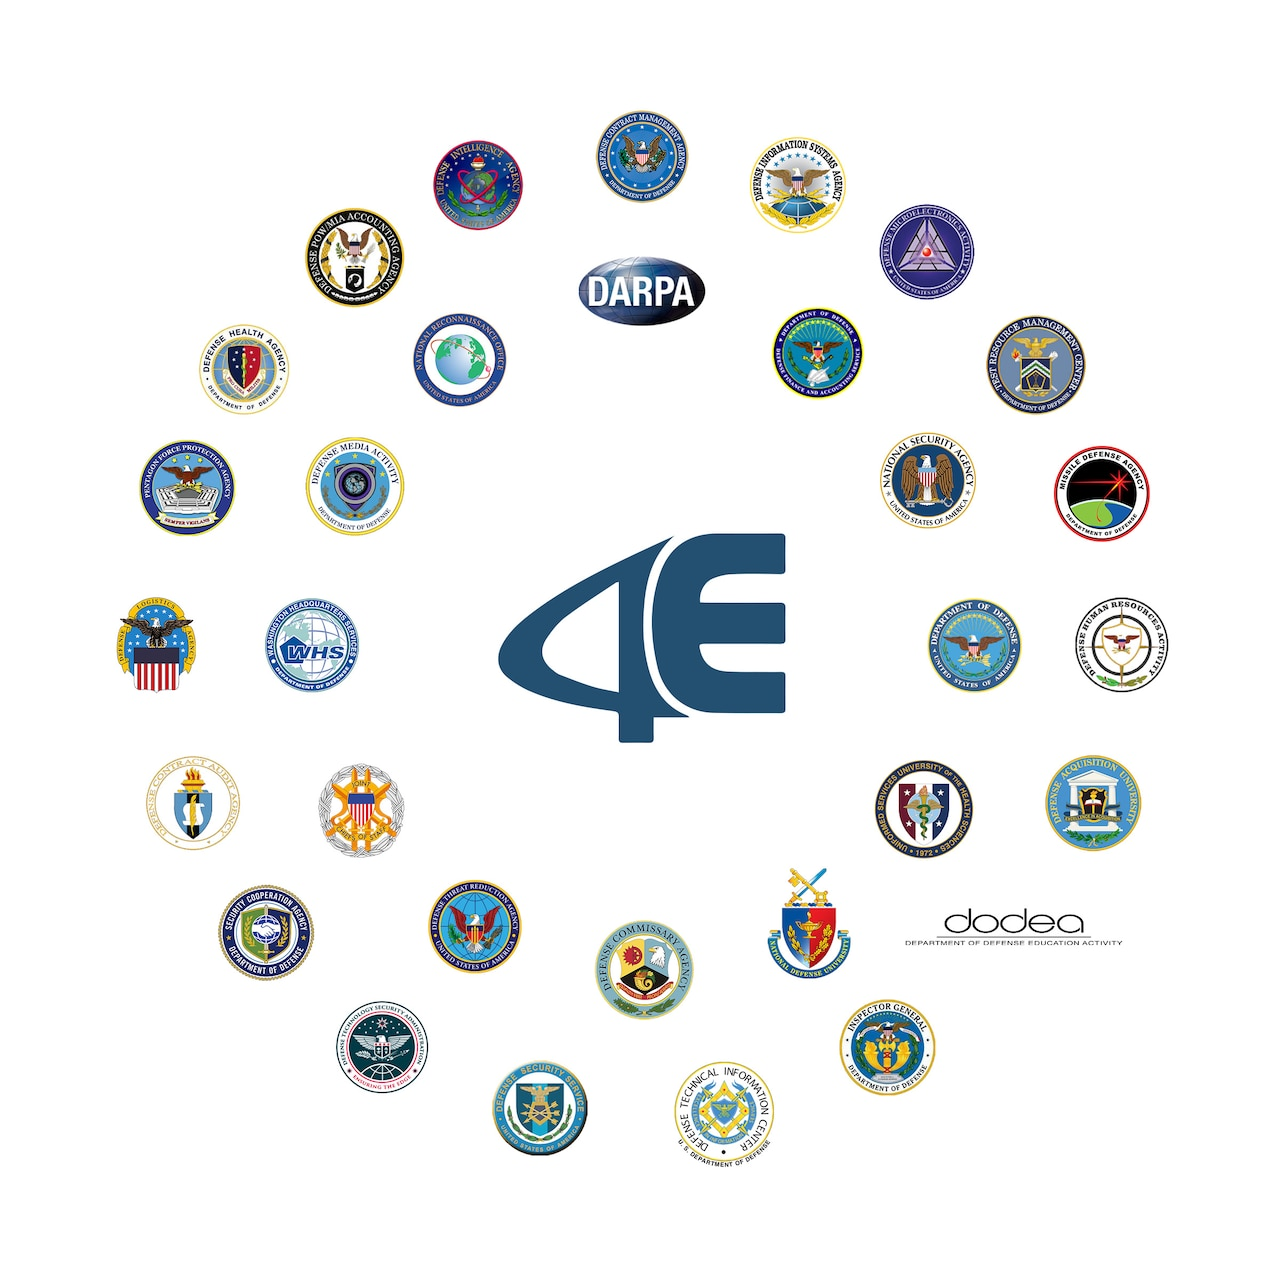 The 4th Estate logo surrounded in a circle by official seals and logos of defense agencies and field activities that have workforce members.